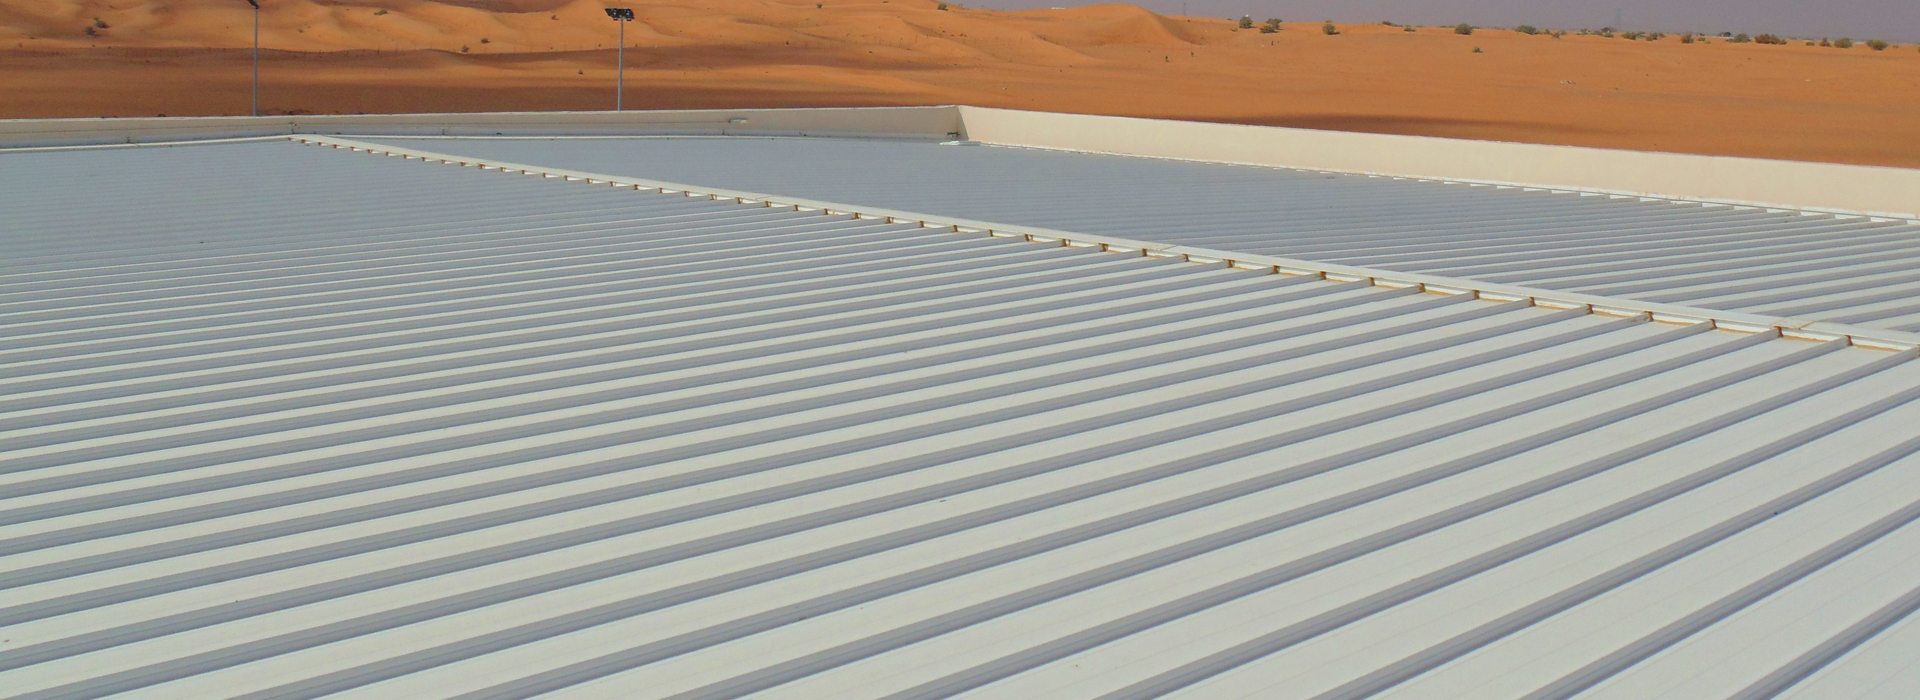 insulated panel manufacturers Oman